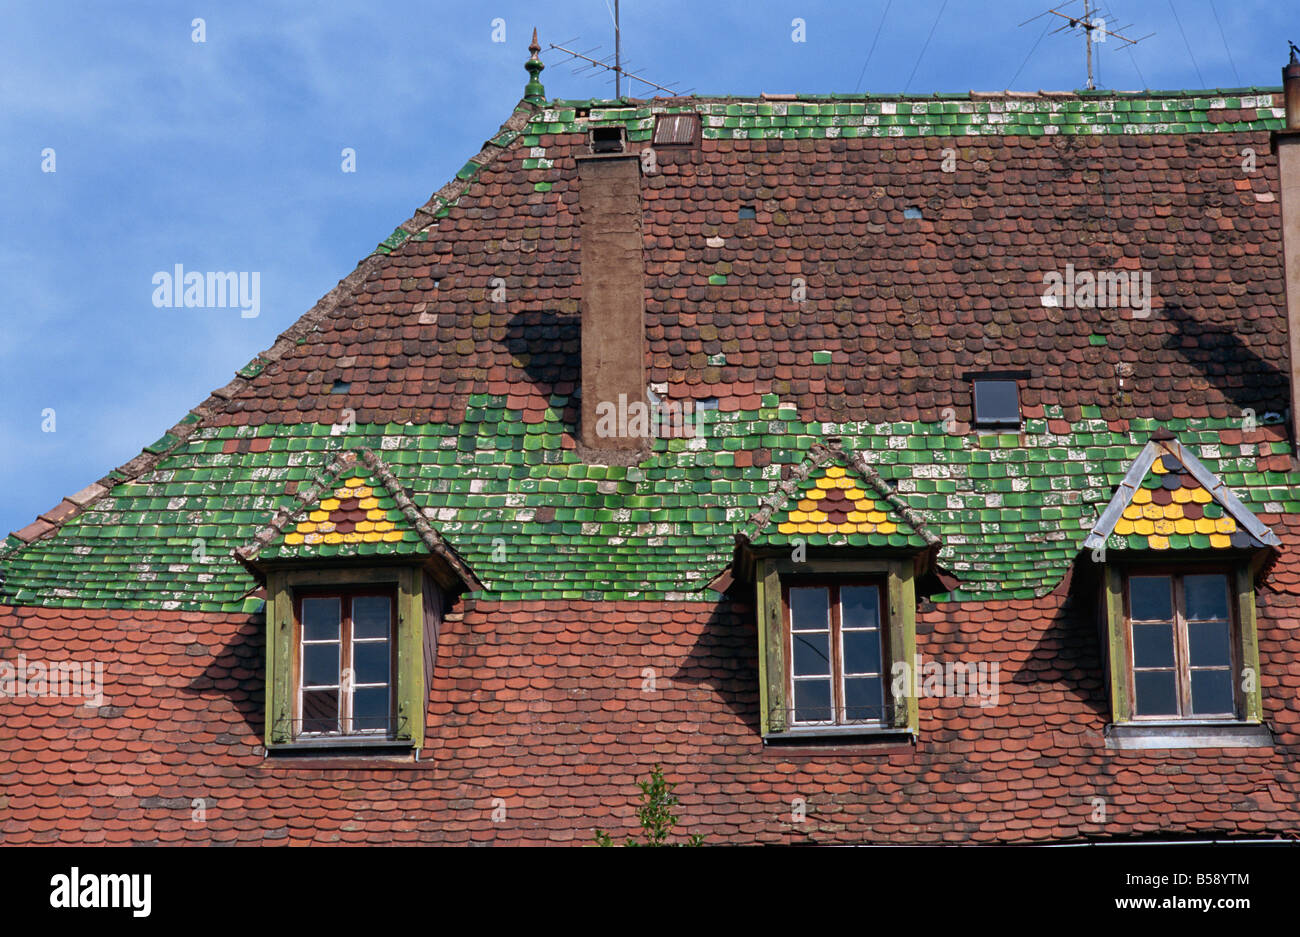 Dormer windows and decorative tiles on a typical roof in the old town of Ribeauville Alsace France G Thouvenin - Stock Image